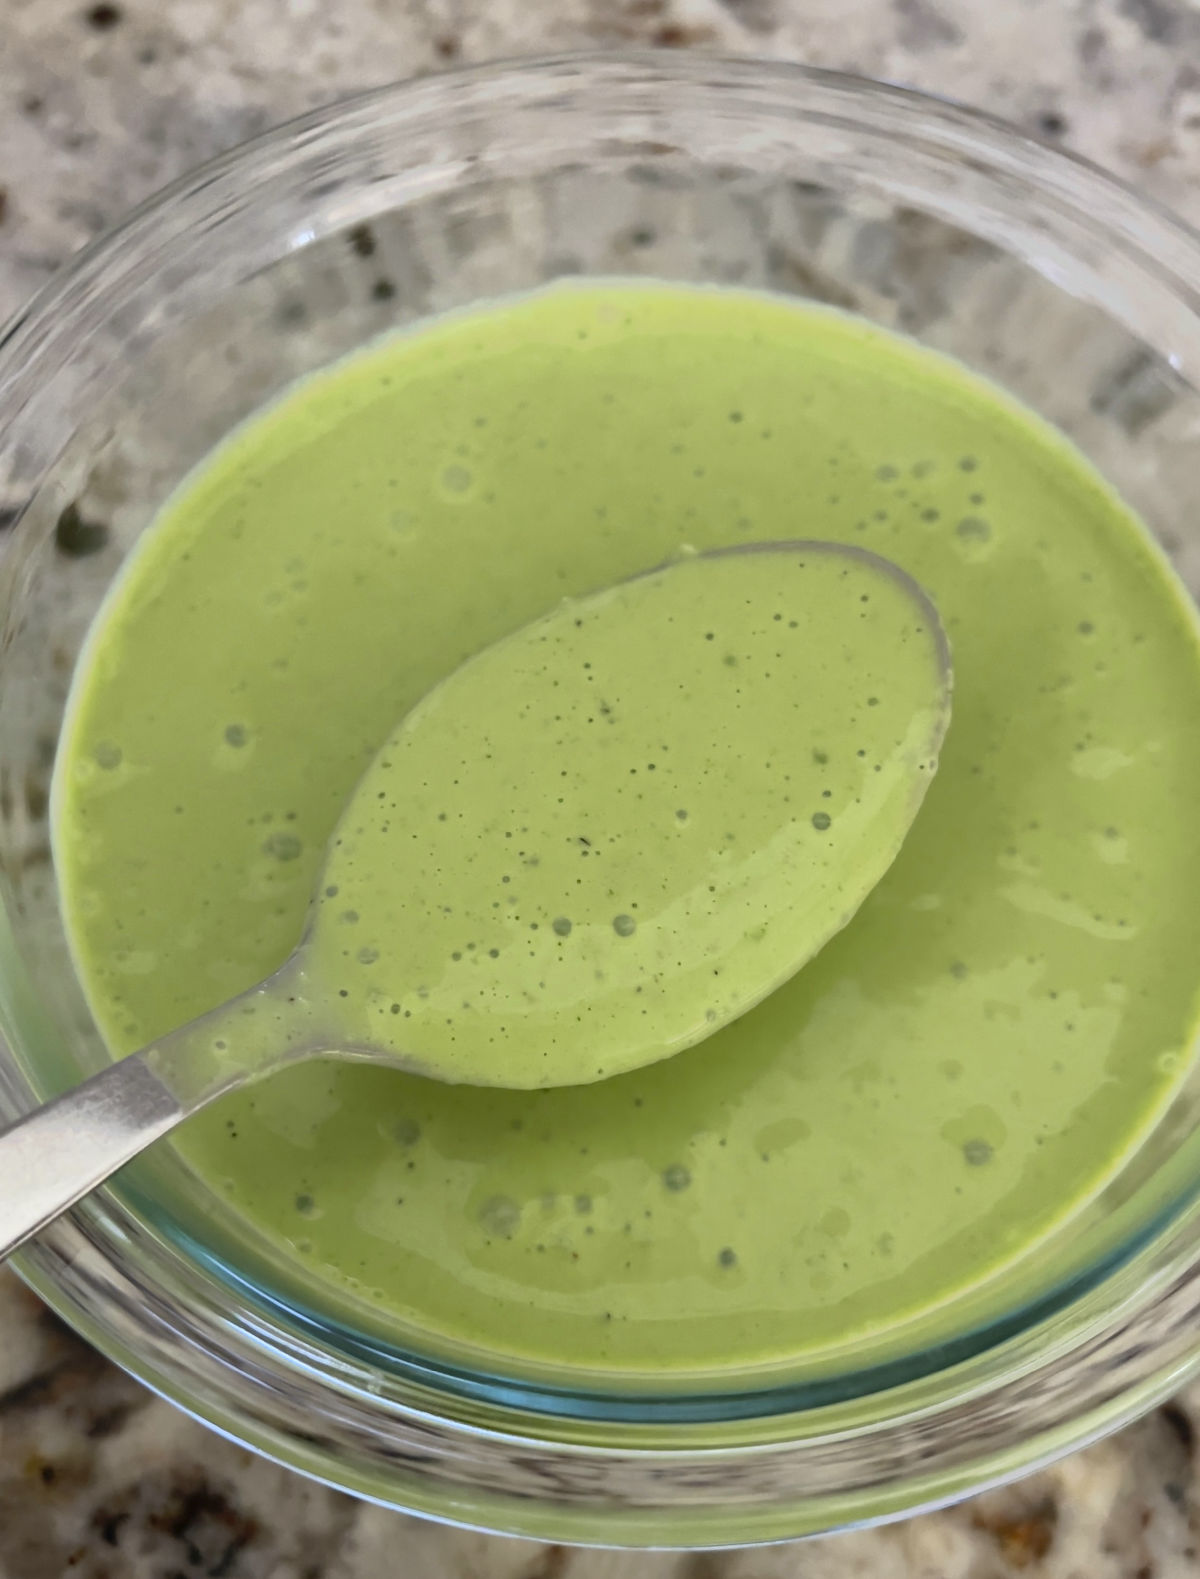 Creamy cilantro mint dressing in a bowl with a spoon